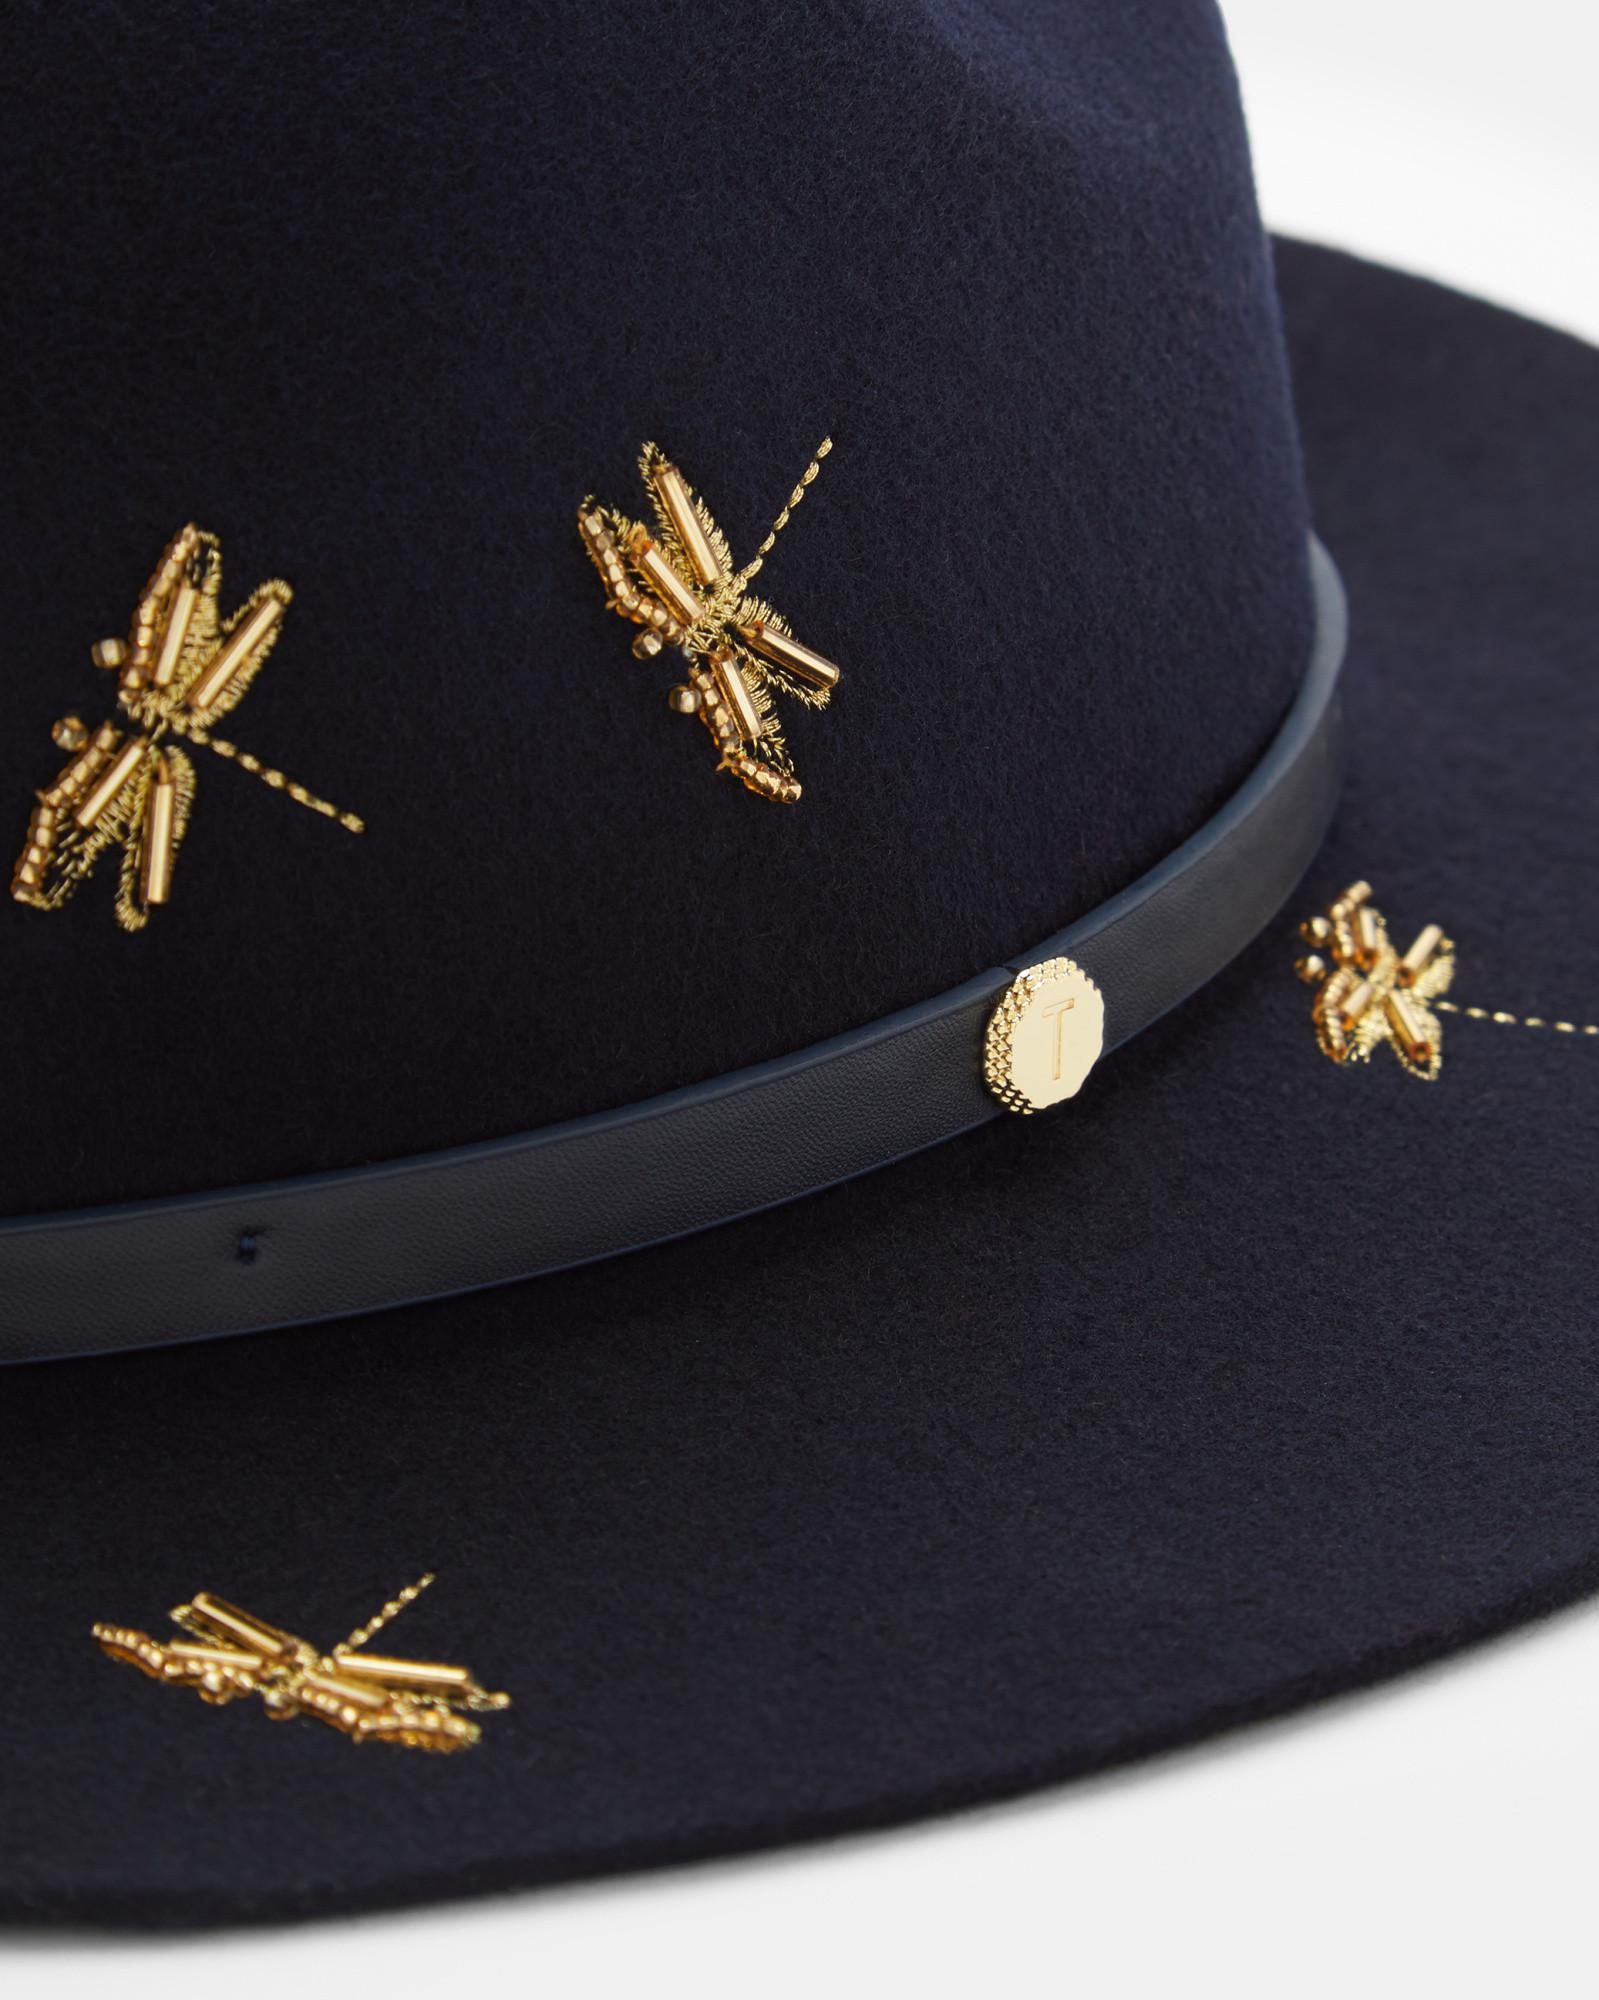 7973f4010e60e Ted Baker Dragonfly Embellished Fedora Hat in Blue - Lyst